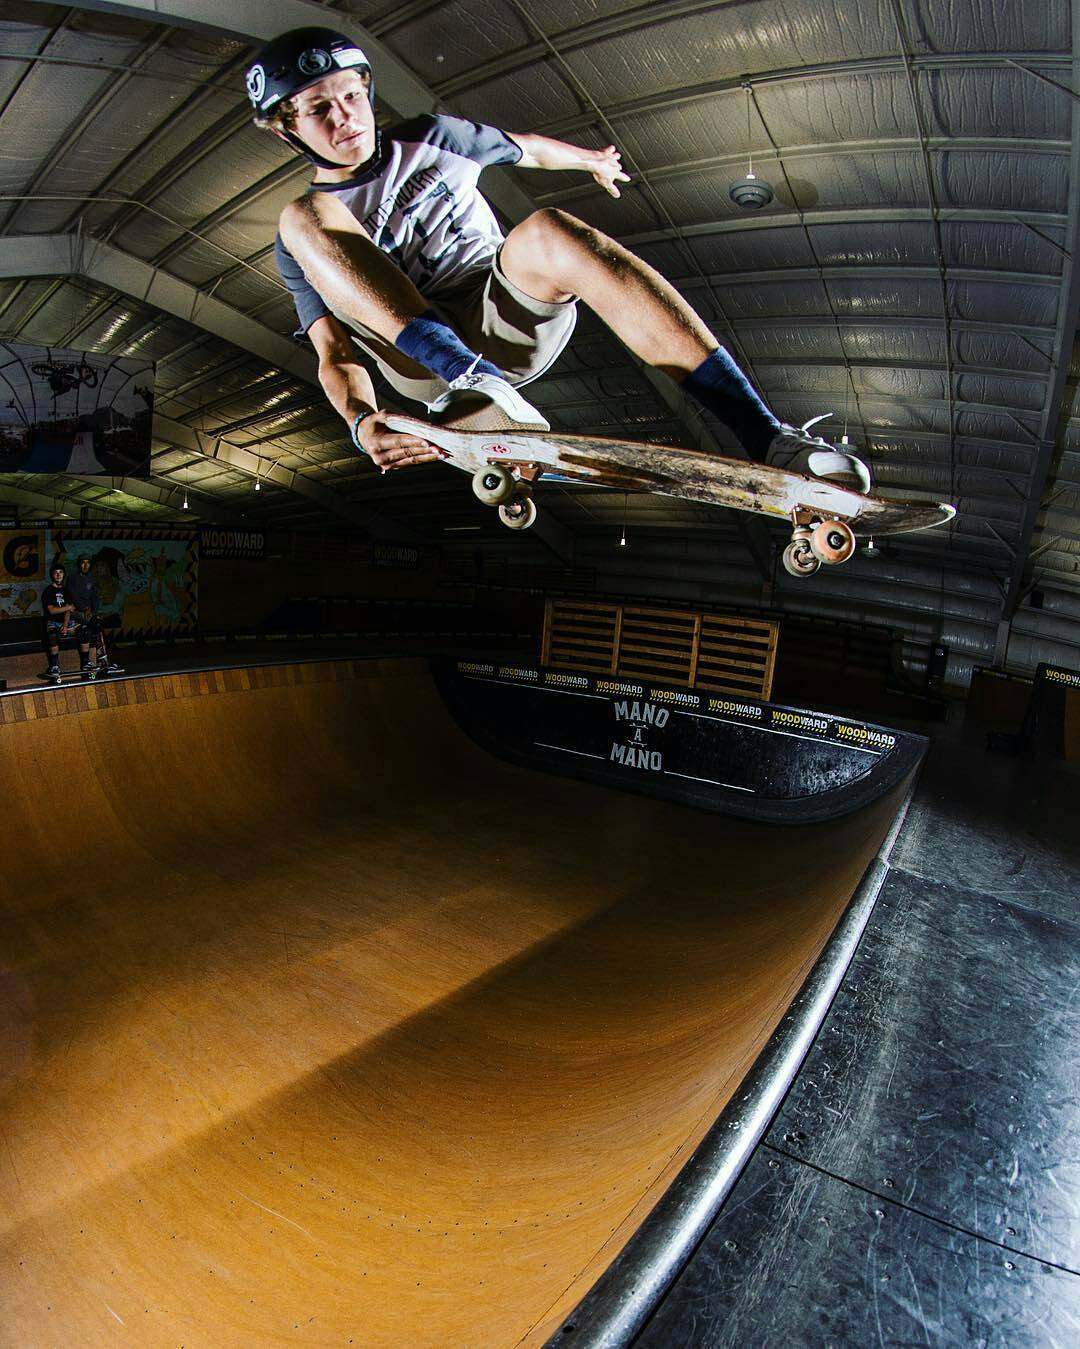 Sick shot that @flavaaadave captured of @benazelart at @woodwardwest #PredatorHelmets #SK8 #halfpipe